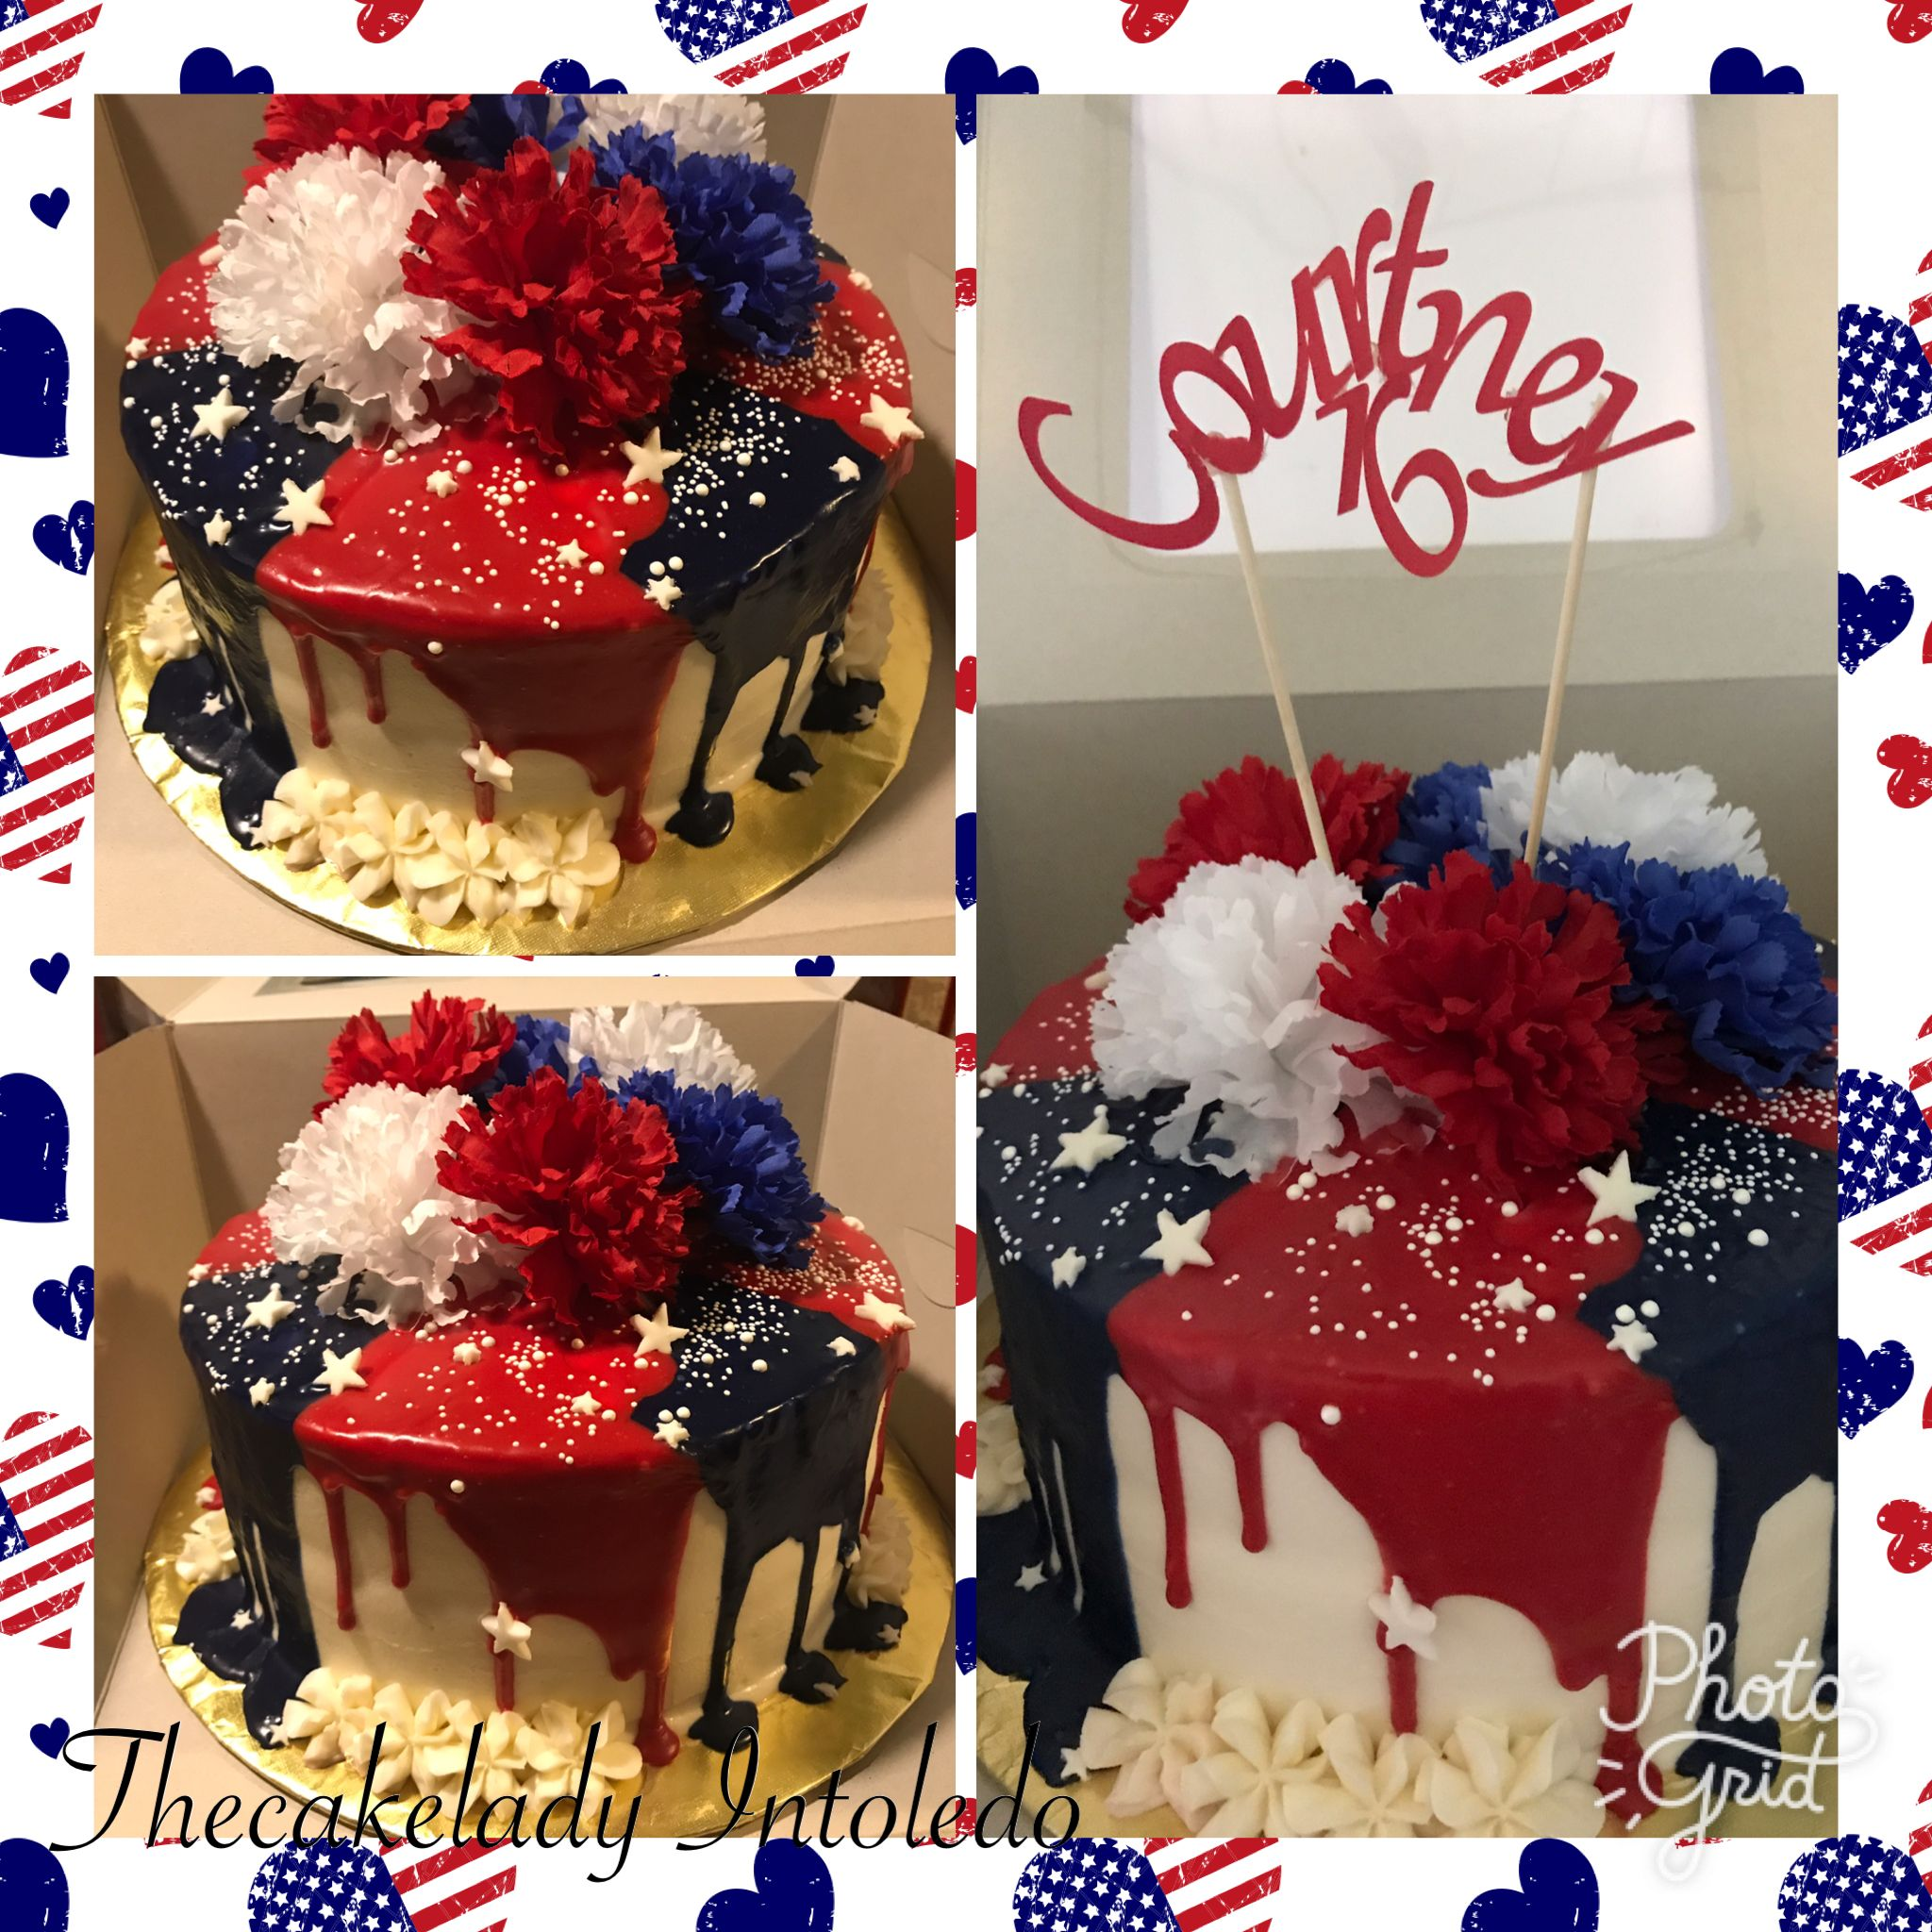 fourth of July sweet 16 cake I made | Things I make ...